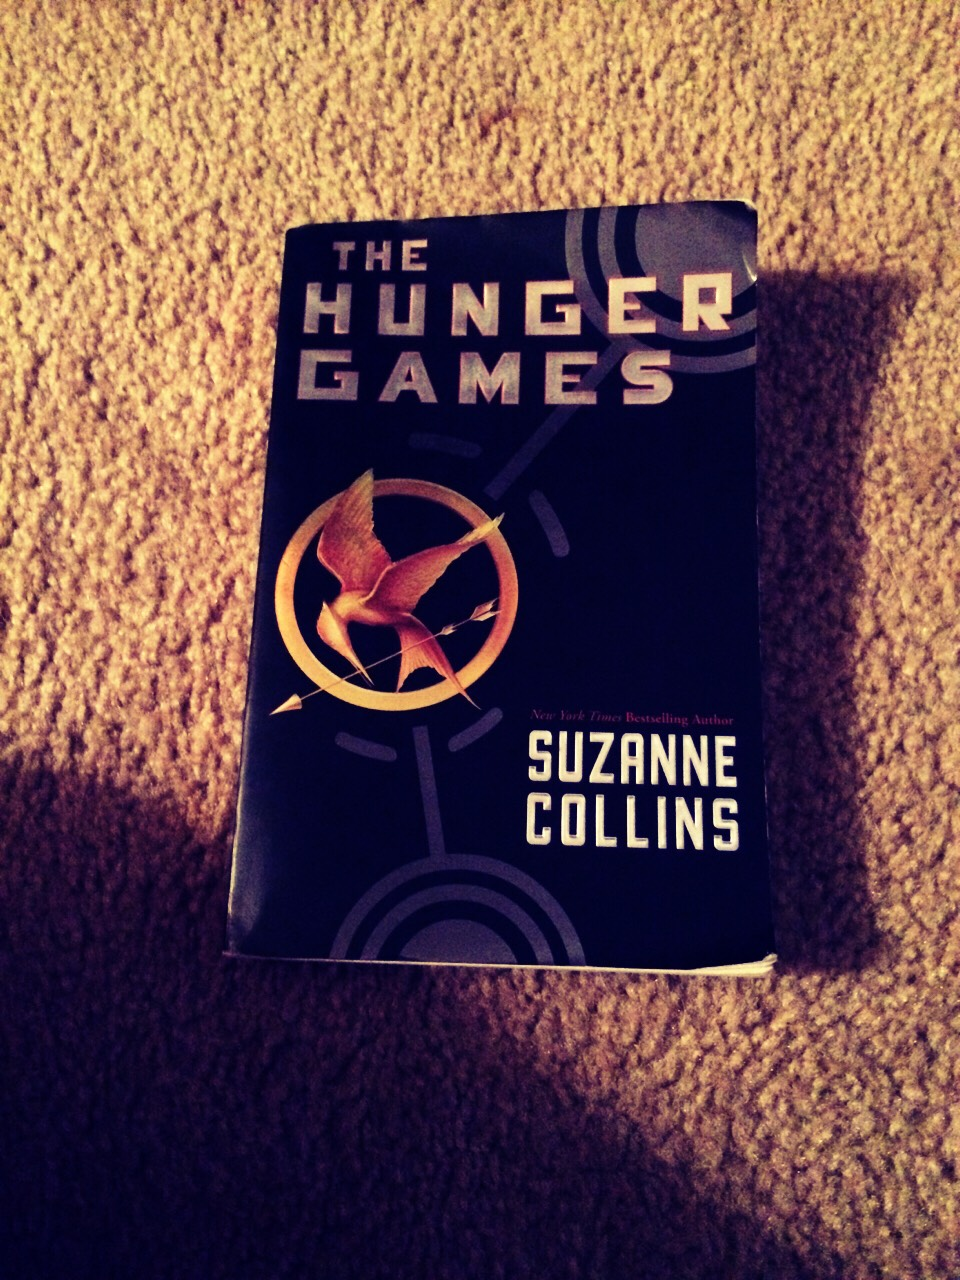 The hunger games!! By Suzanne Collins;series of 4